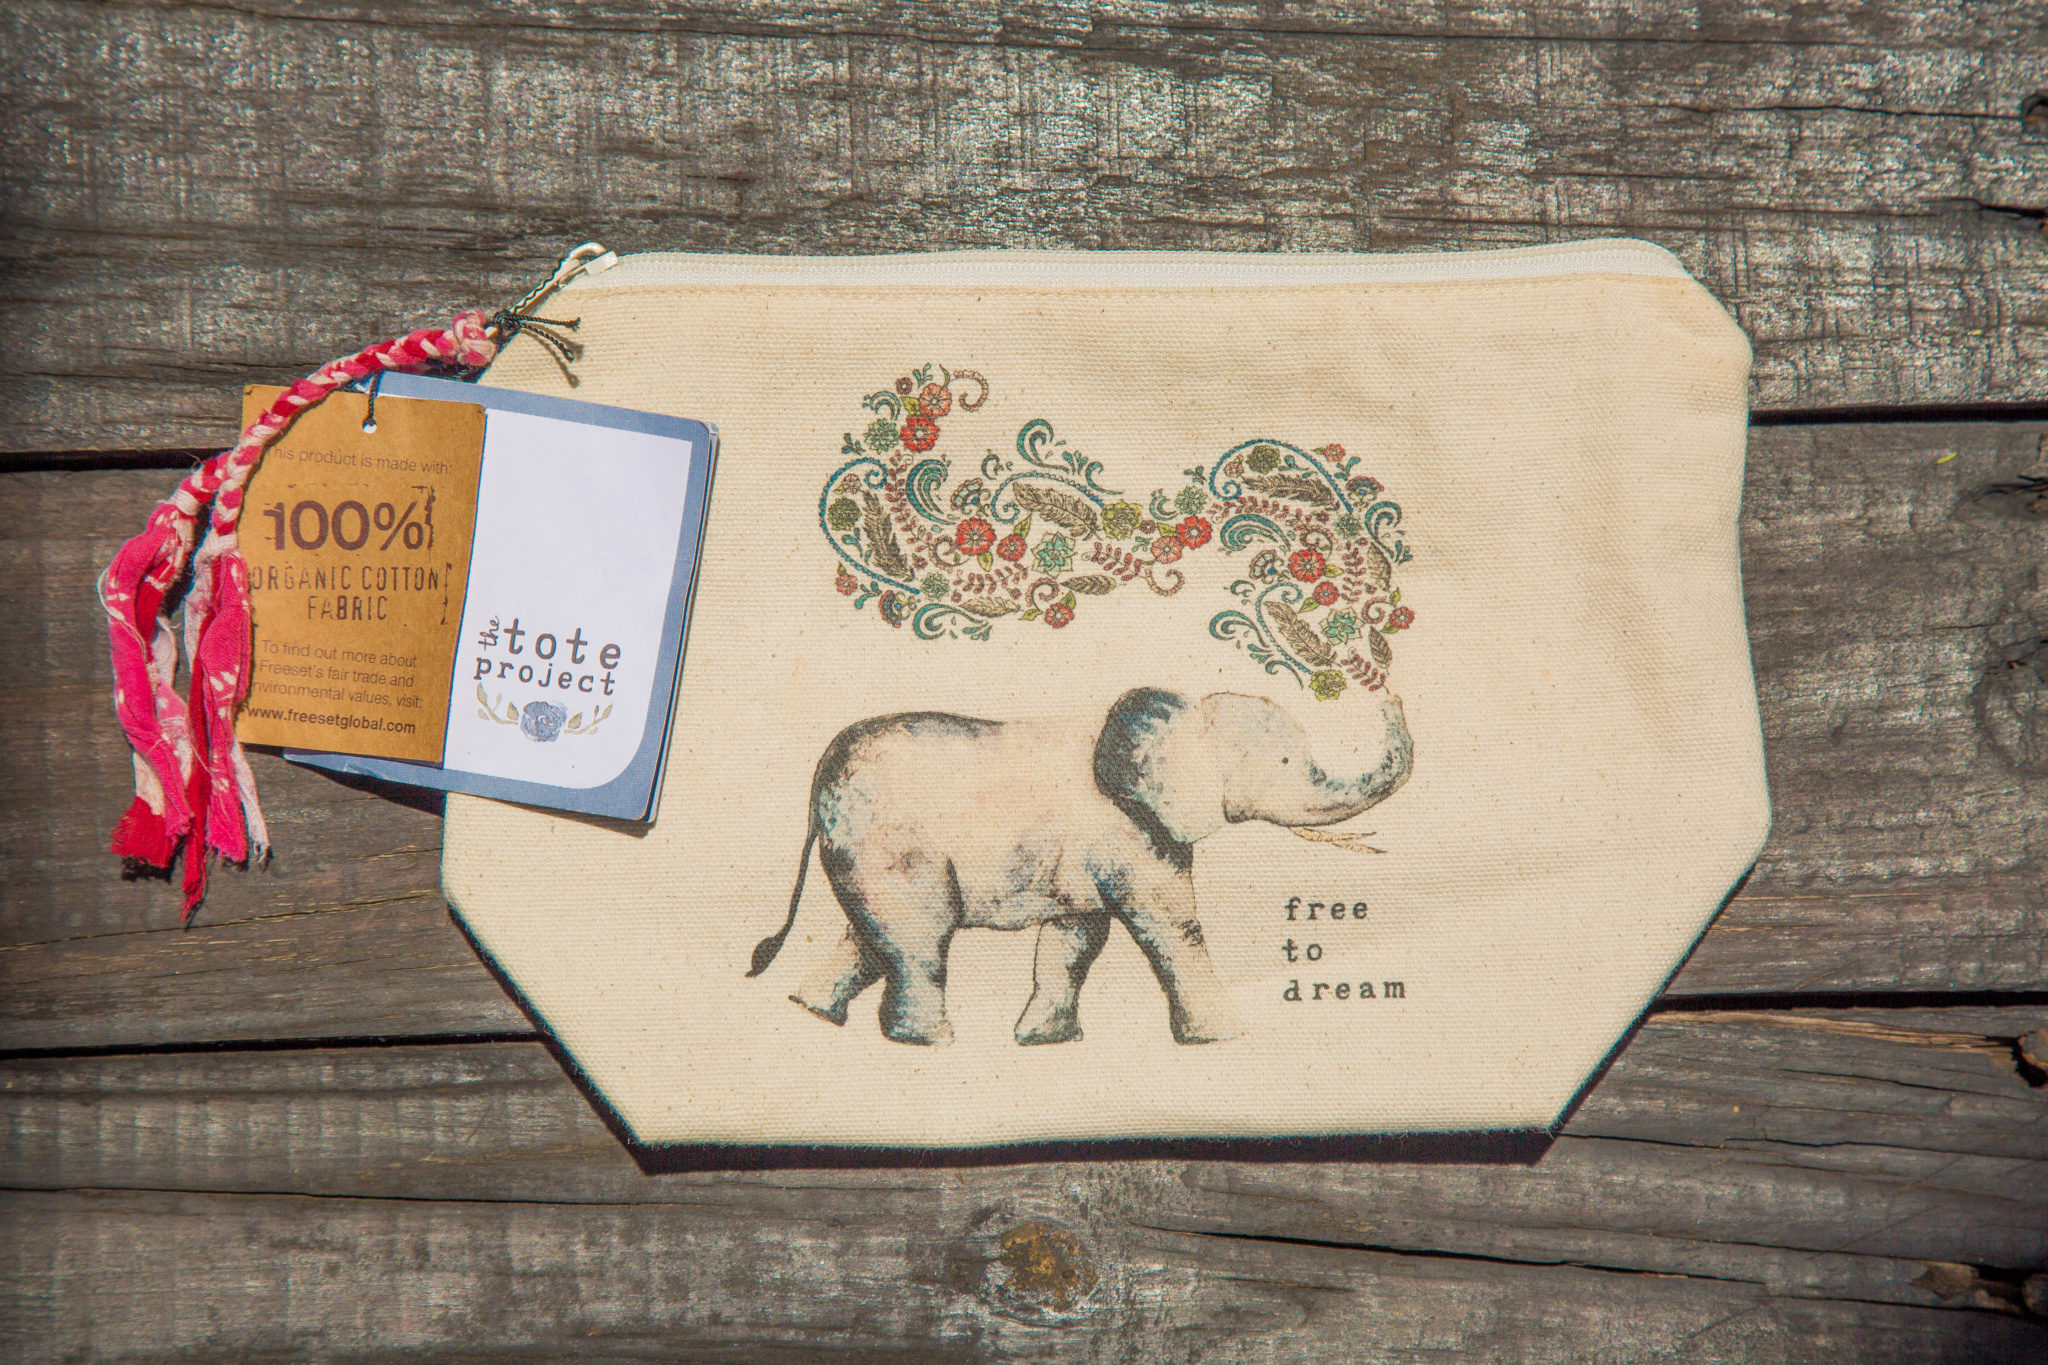 Ethical Fashion Brands - The Tote Project - Mar Gone Wild